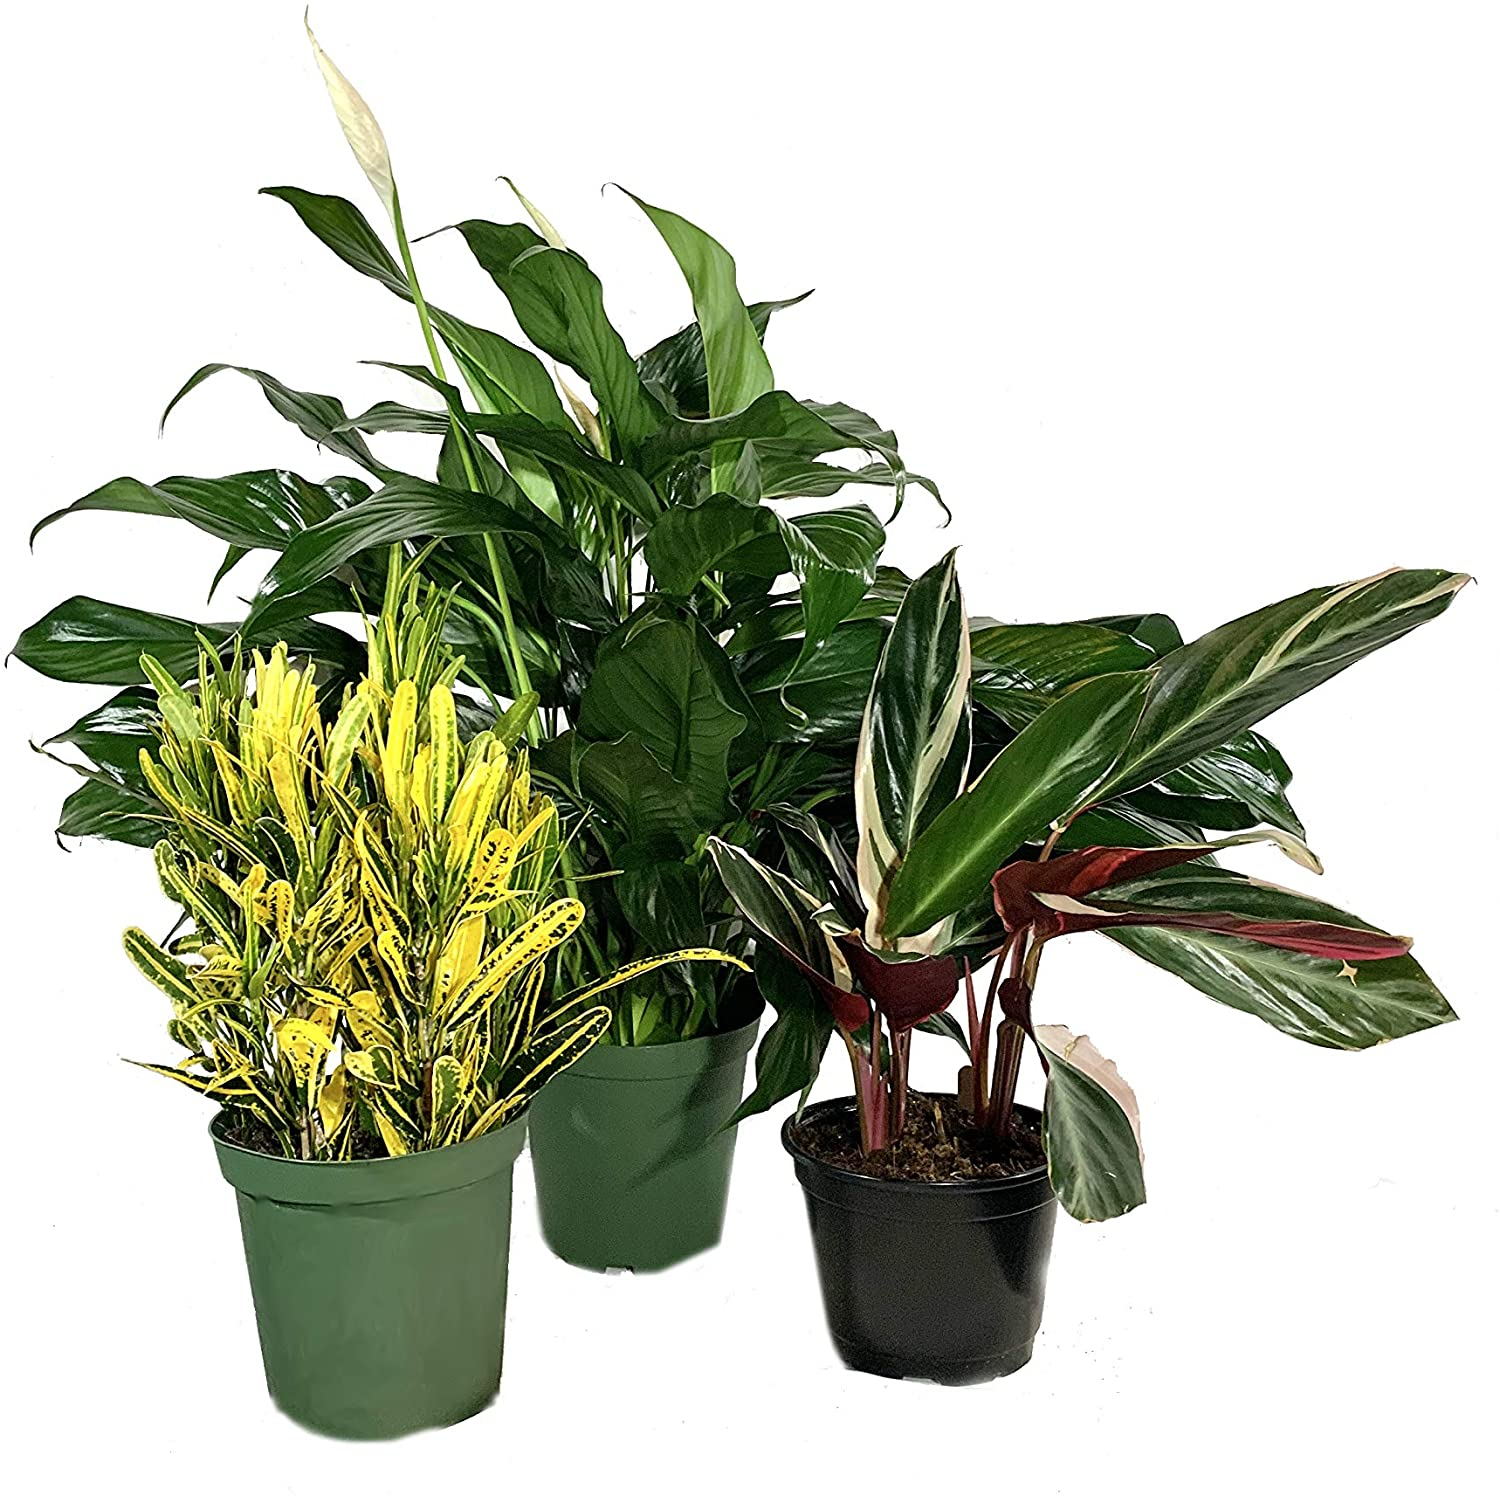 Colorful Houseplant Multi-Pack - 3 Live Plants in 6 Inch Pots - Stromanthe Triostar, Banana Croton, Spathiphyllum Peace Lily - Easy Care Indoor Houseplants